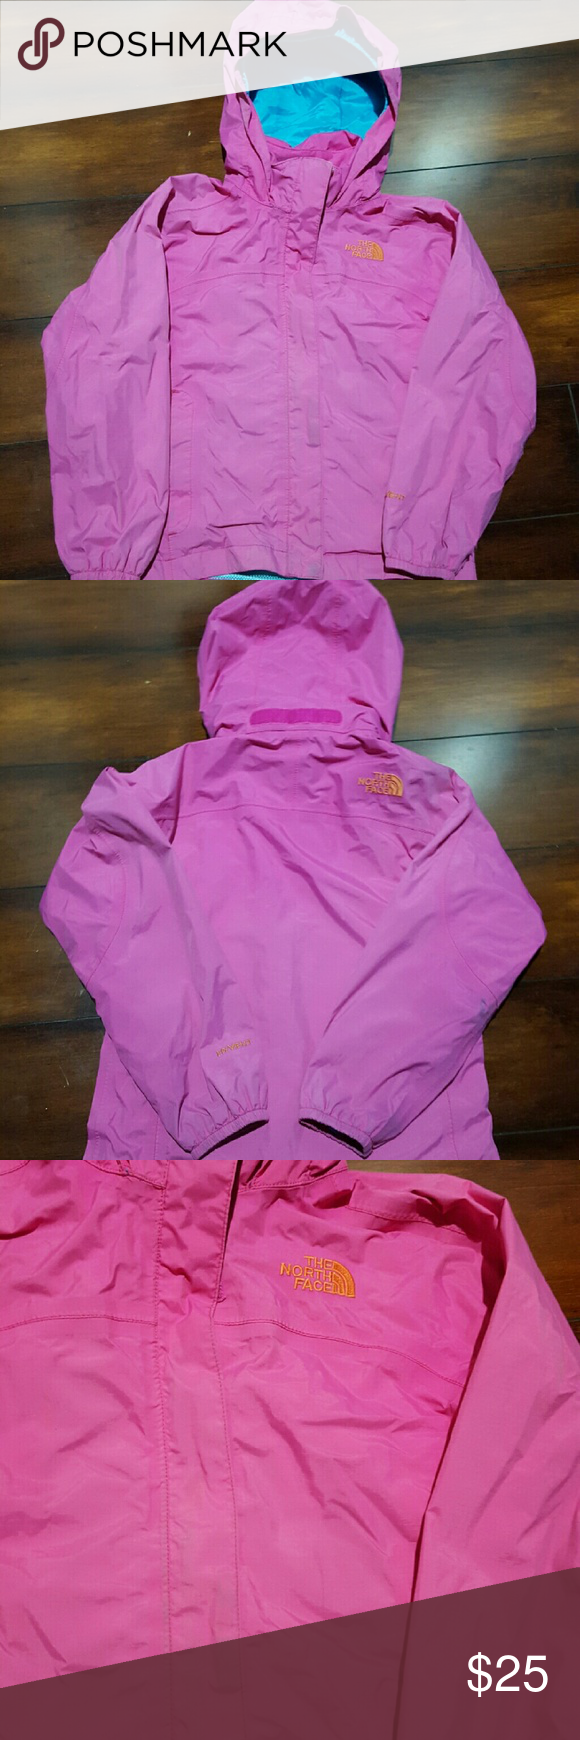 Girls North Face rain coat, size XS GIRLS Pink North Face rain coat, size XS.   Please see pics of one stain on sleeve and slight Discoloration by velcro. North Face Jackets & Coats Raincoats